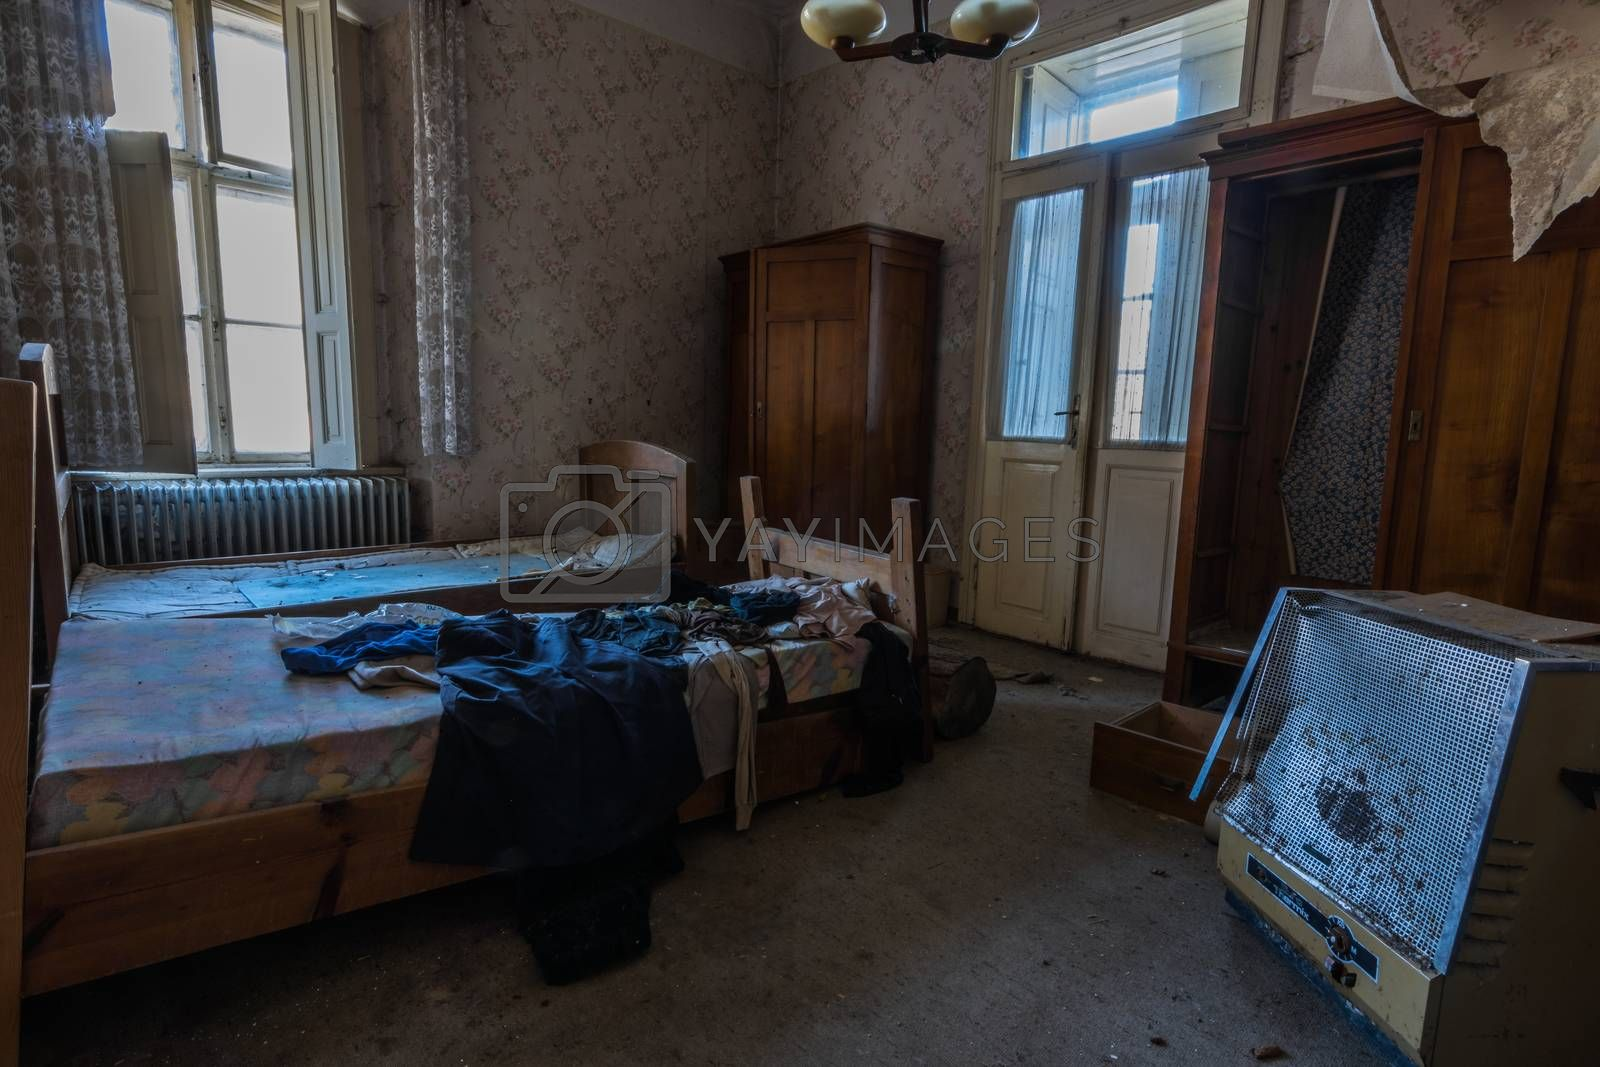 abandoned hotel room with beds and heating